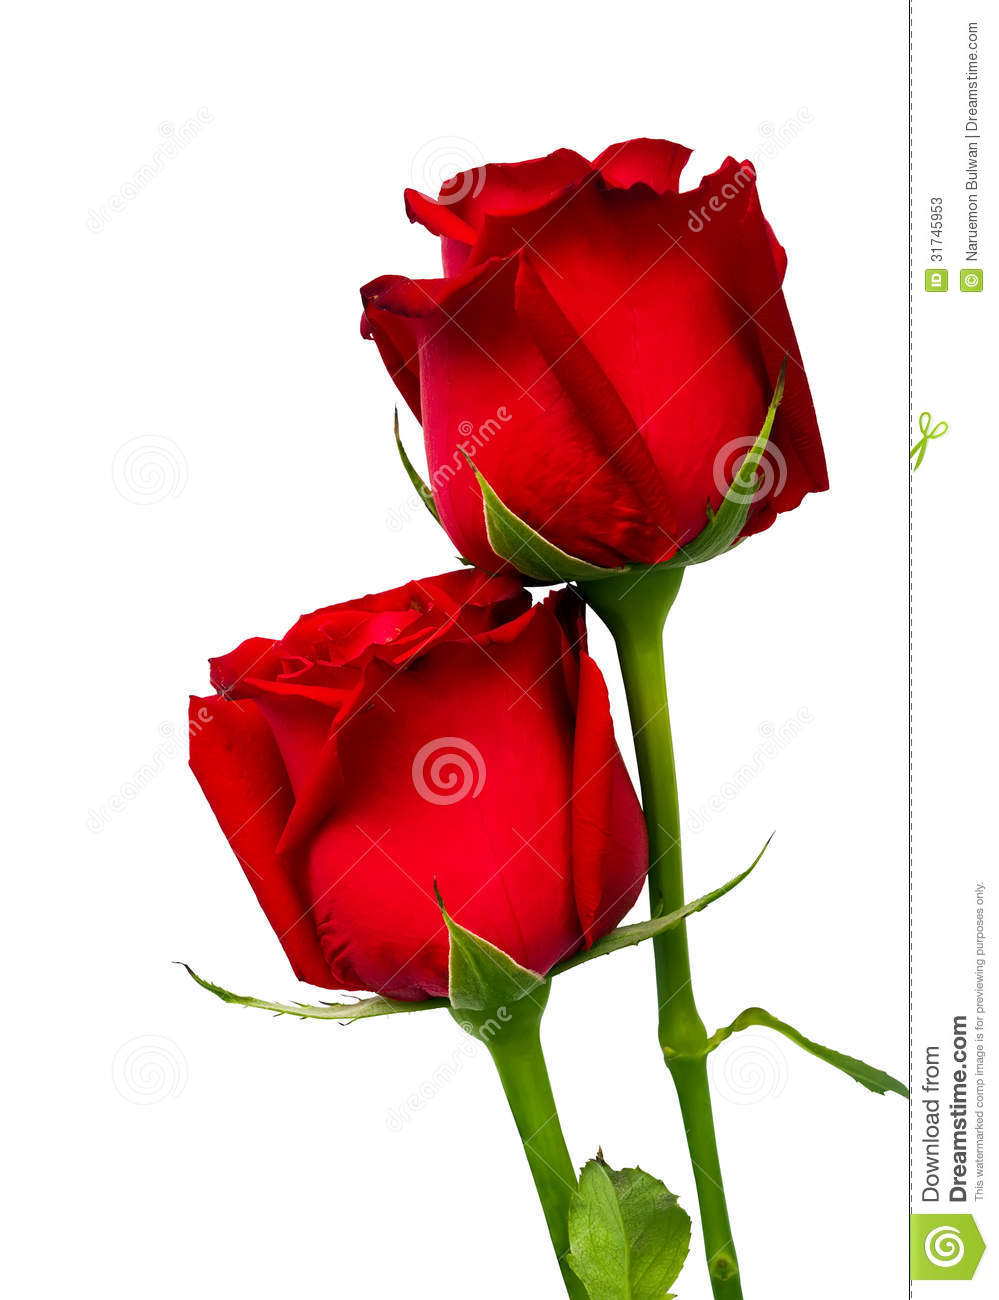 flower vase sign with Stock Photos Two Red Rose Isolated White Background Image31745953 on Name 3Dpink Rose 7D likewise Fortnite Account All Season 2 Skins Mako Glider 46083864 additionally Watch as well Watch likewise Gerbera Daisies.